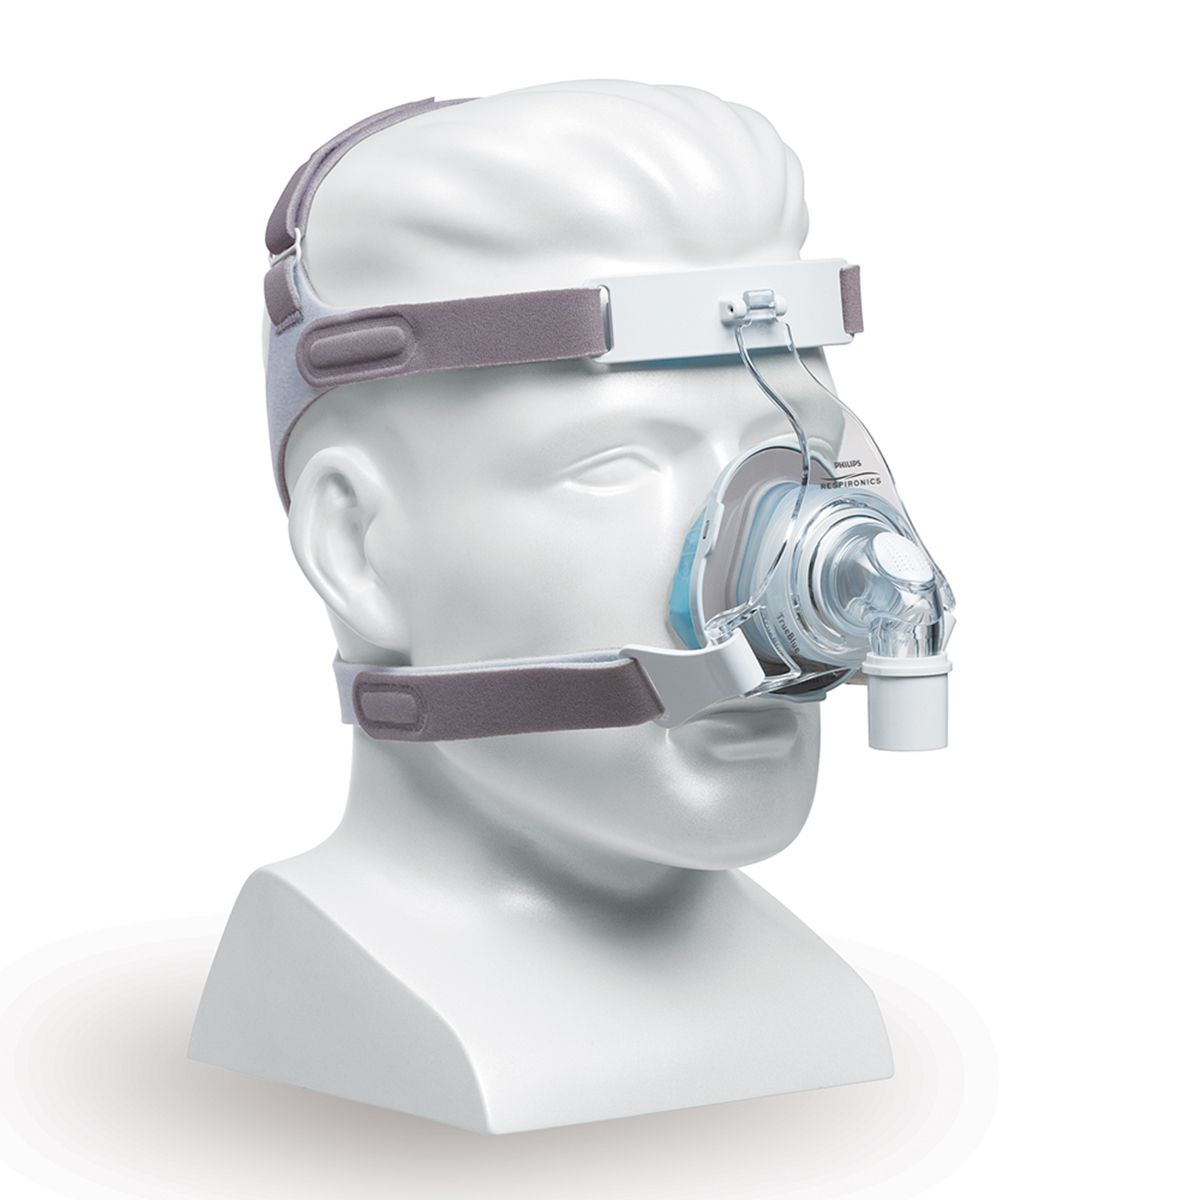 TrueBlue Nasal- Philips Respironics